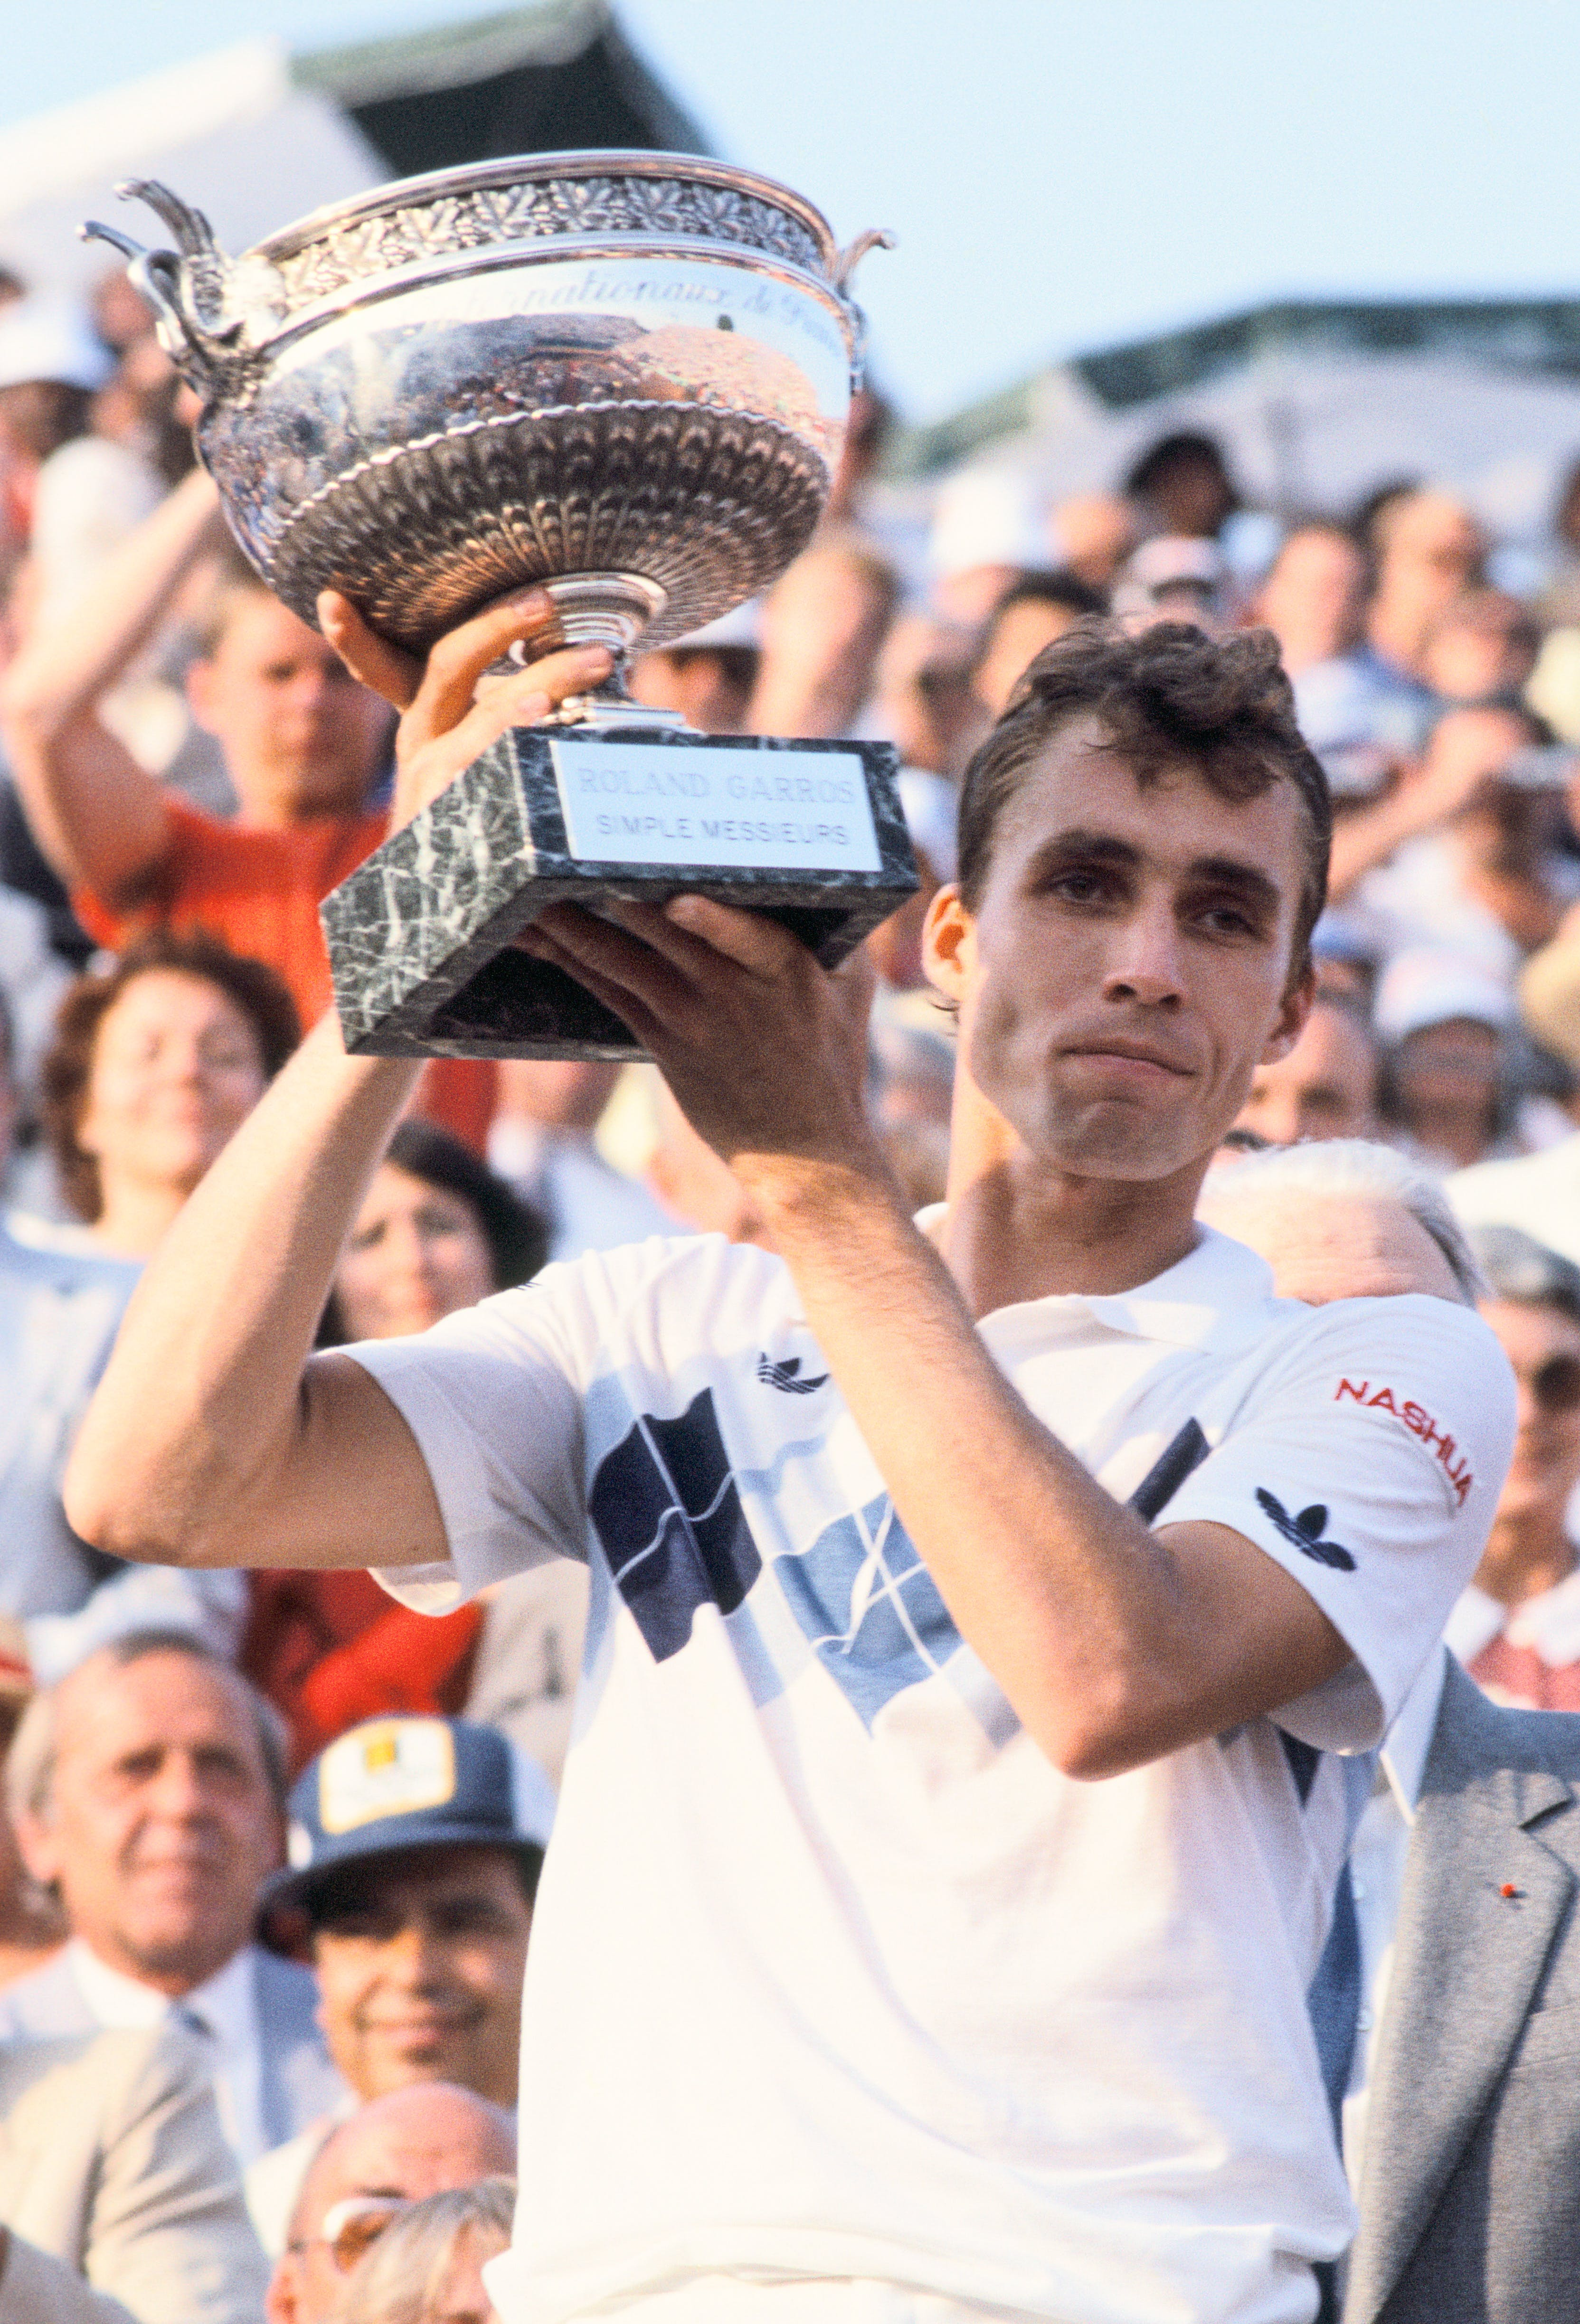 Ivan Lendl with the trophy after the final at Roland-Garros 1984